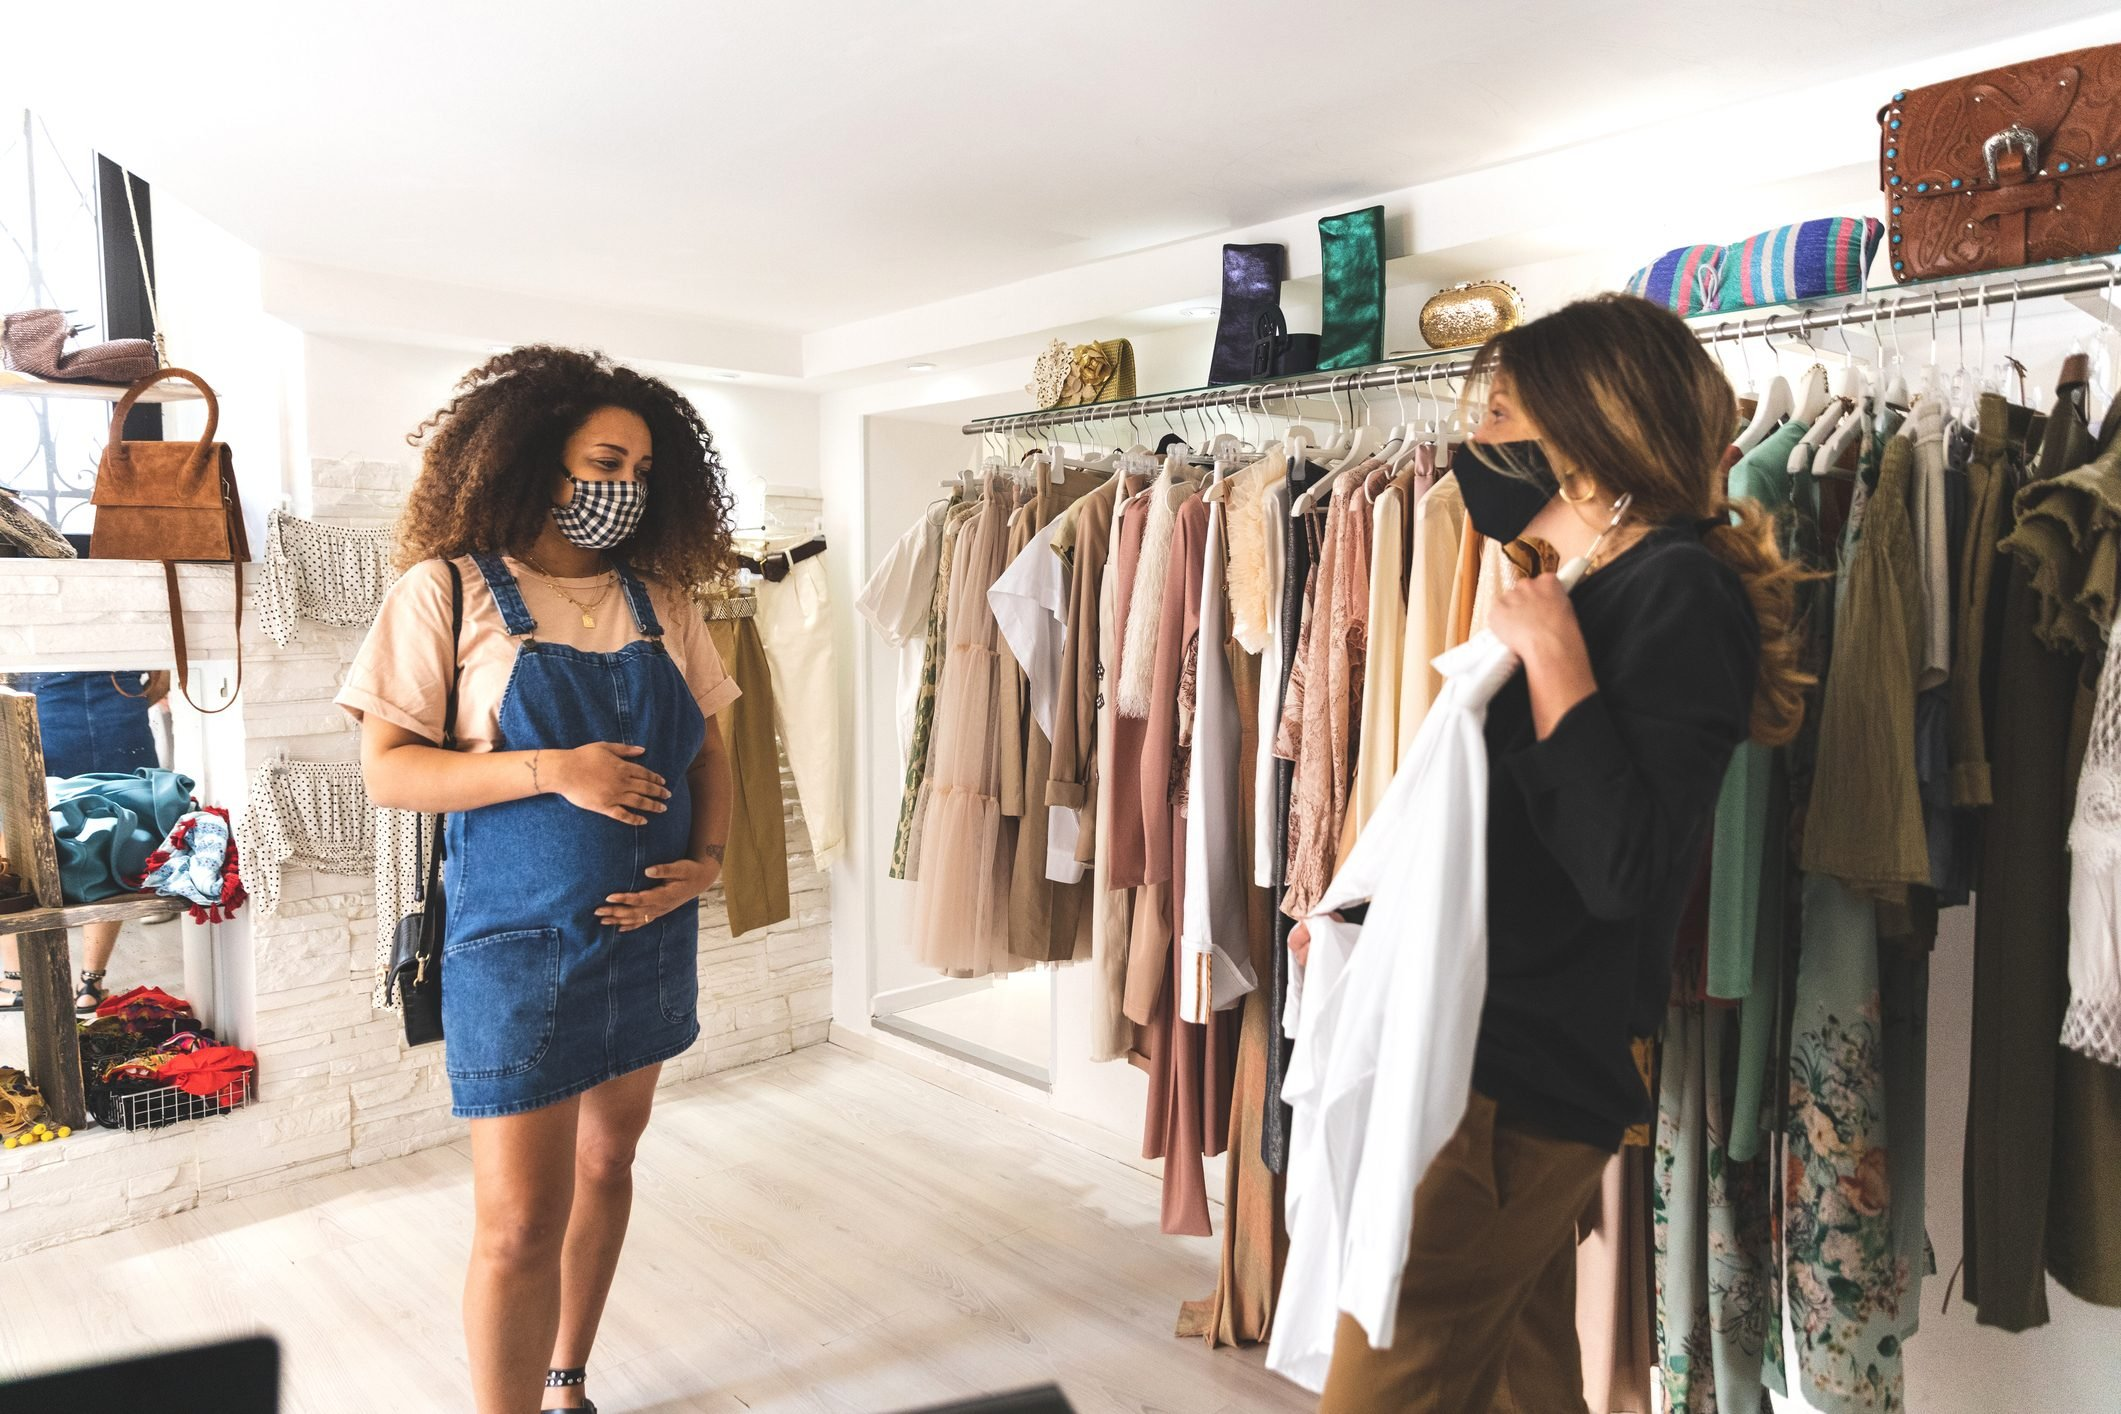 Shop owner showing new clothes collection to a customer